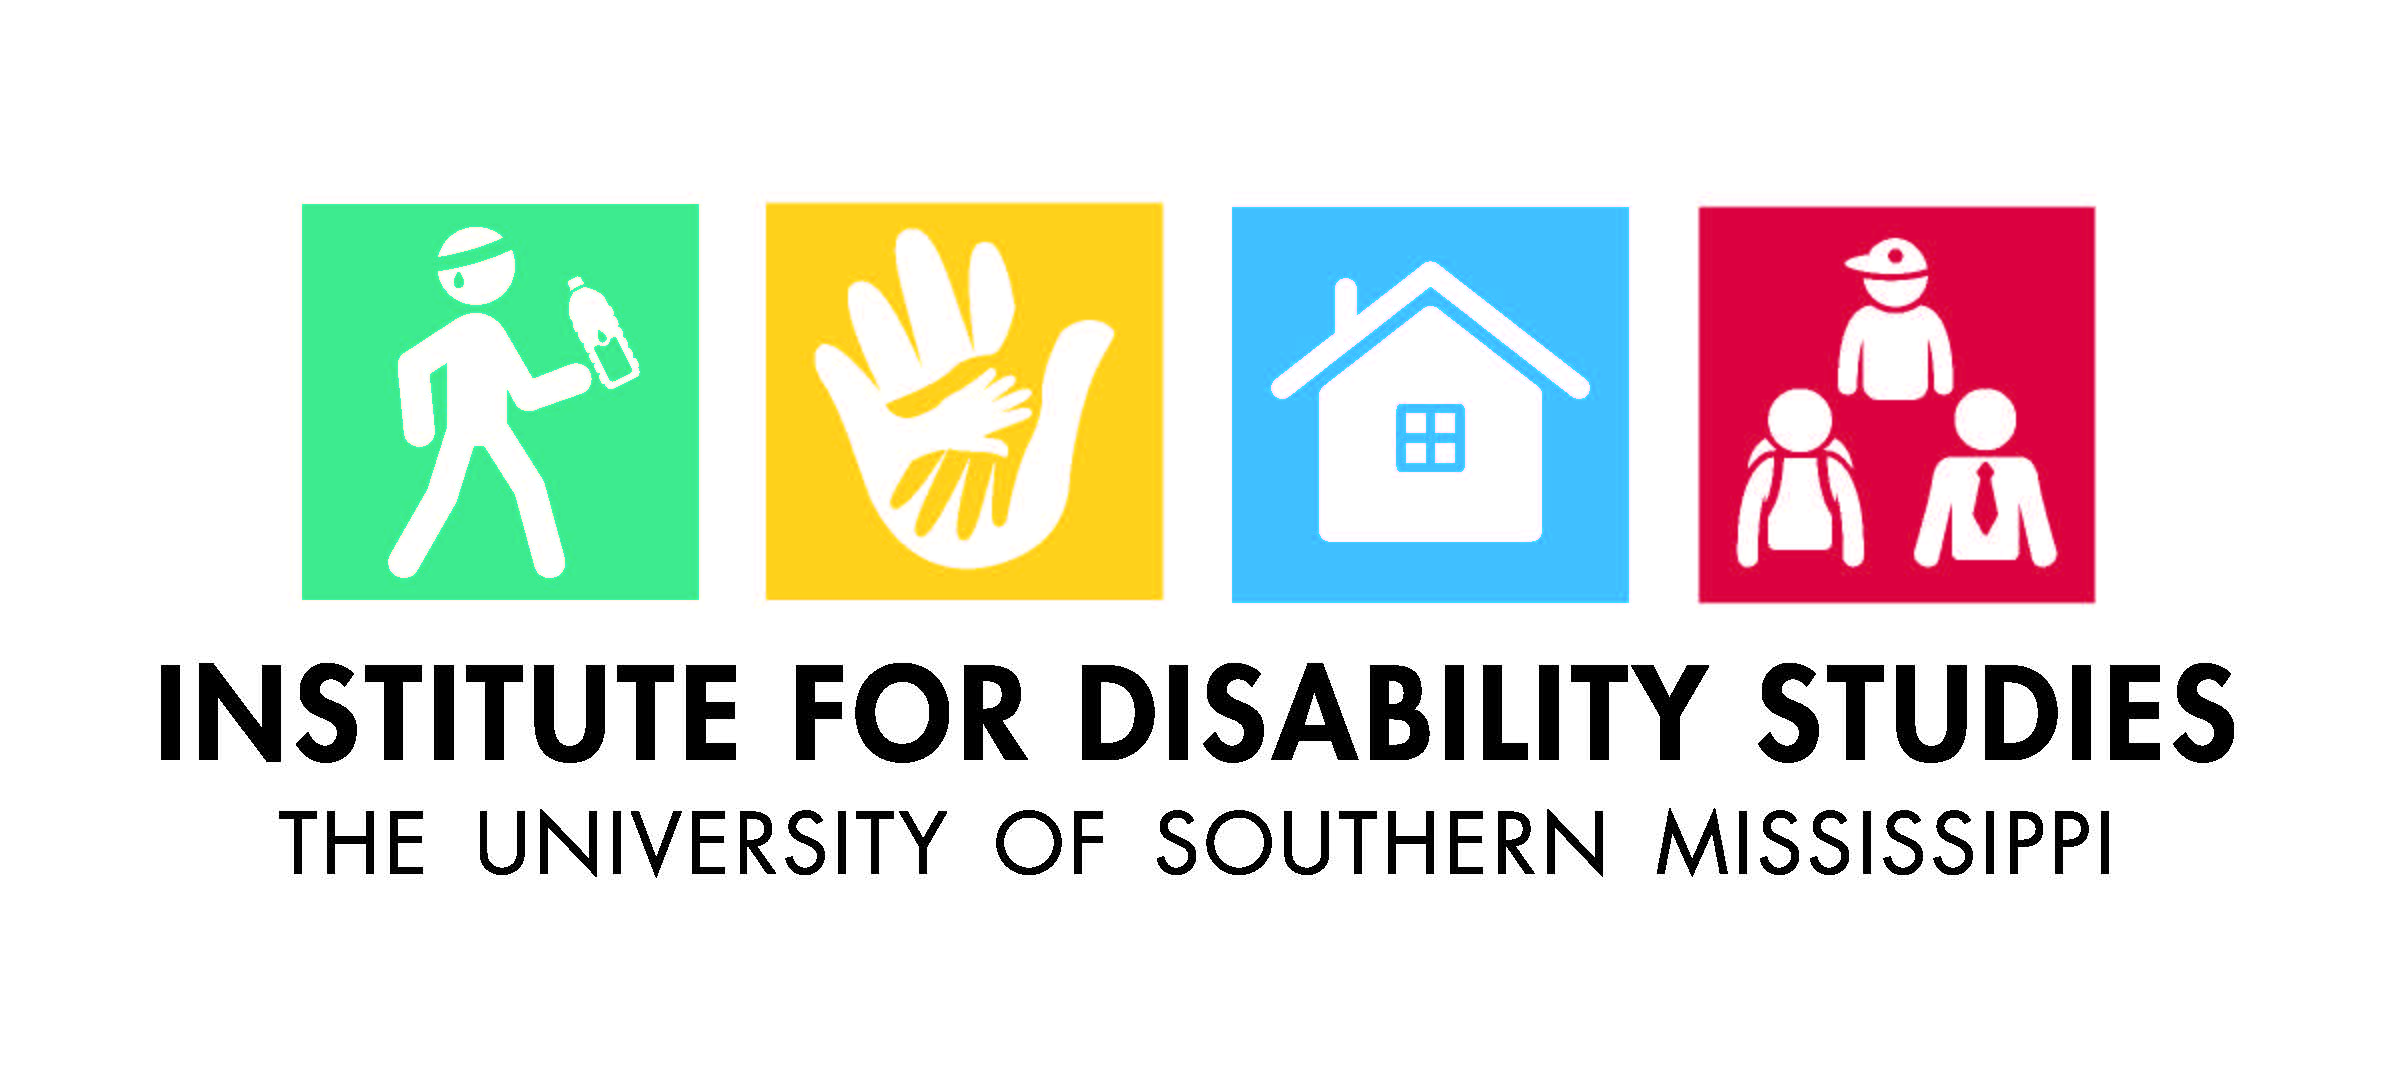 Institute for Disability Studies